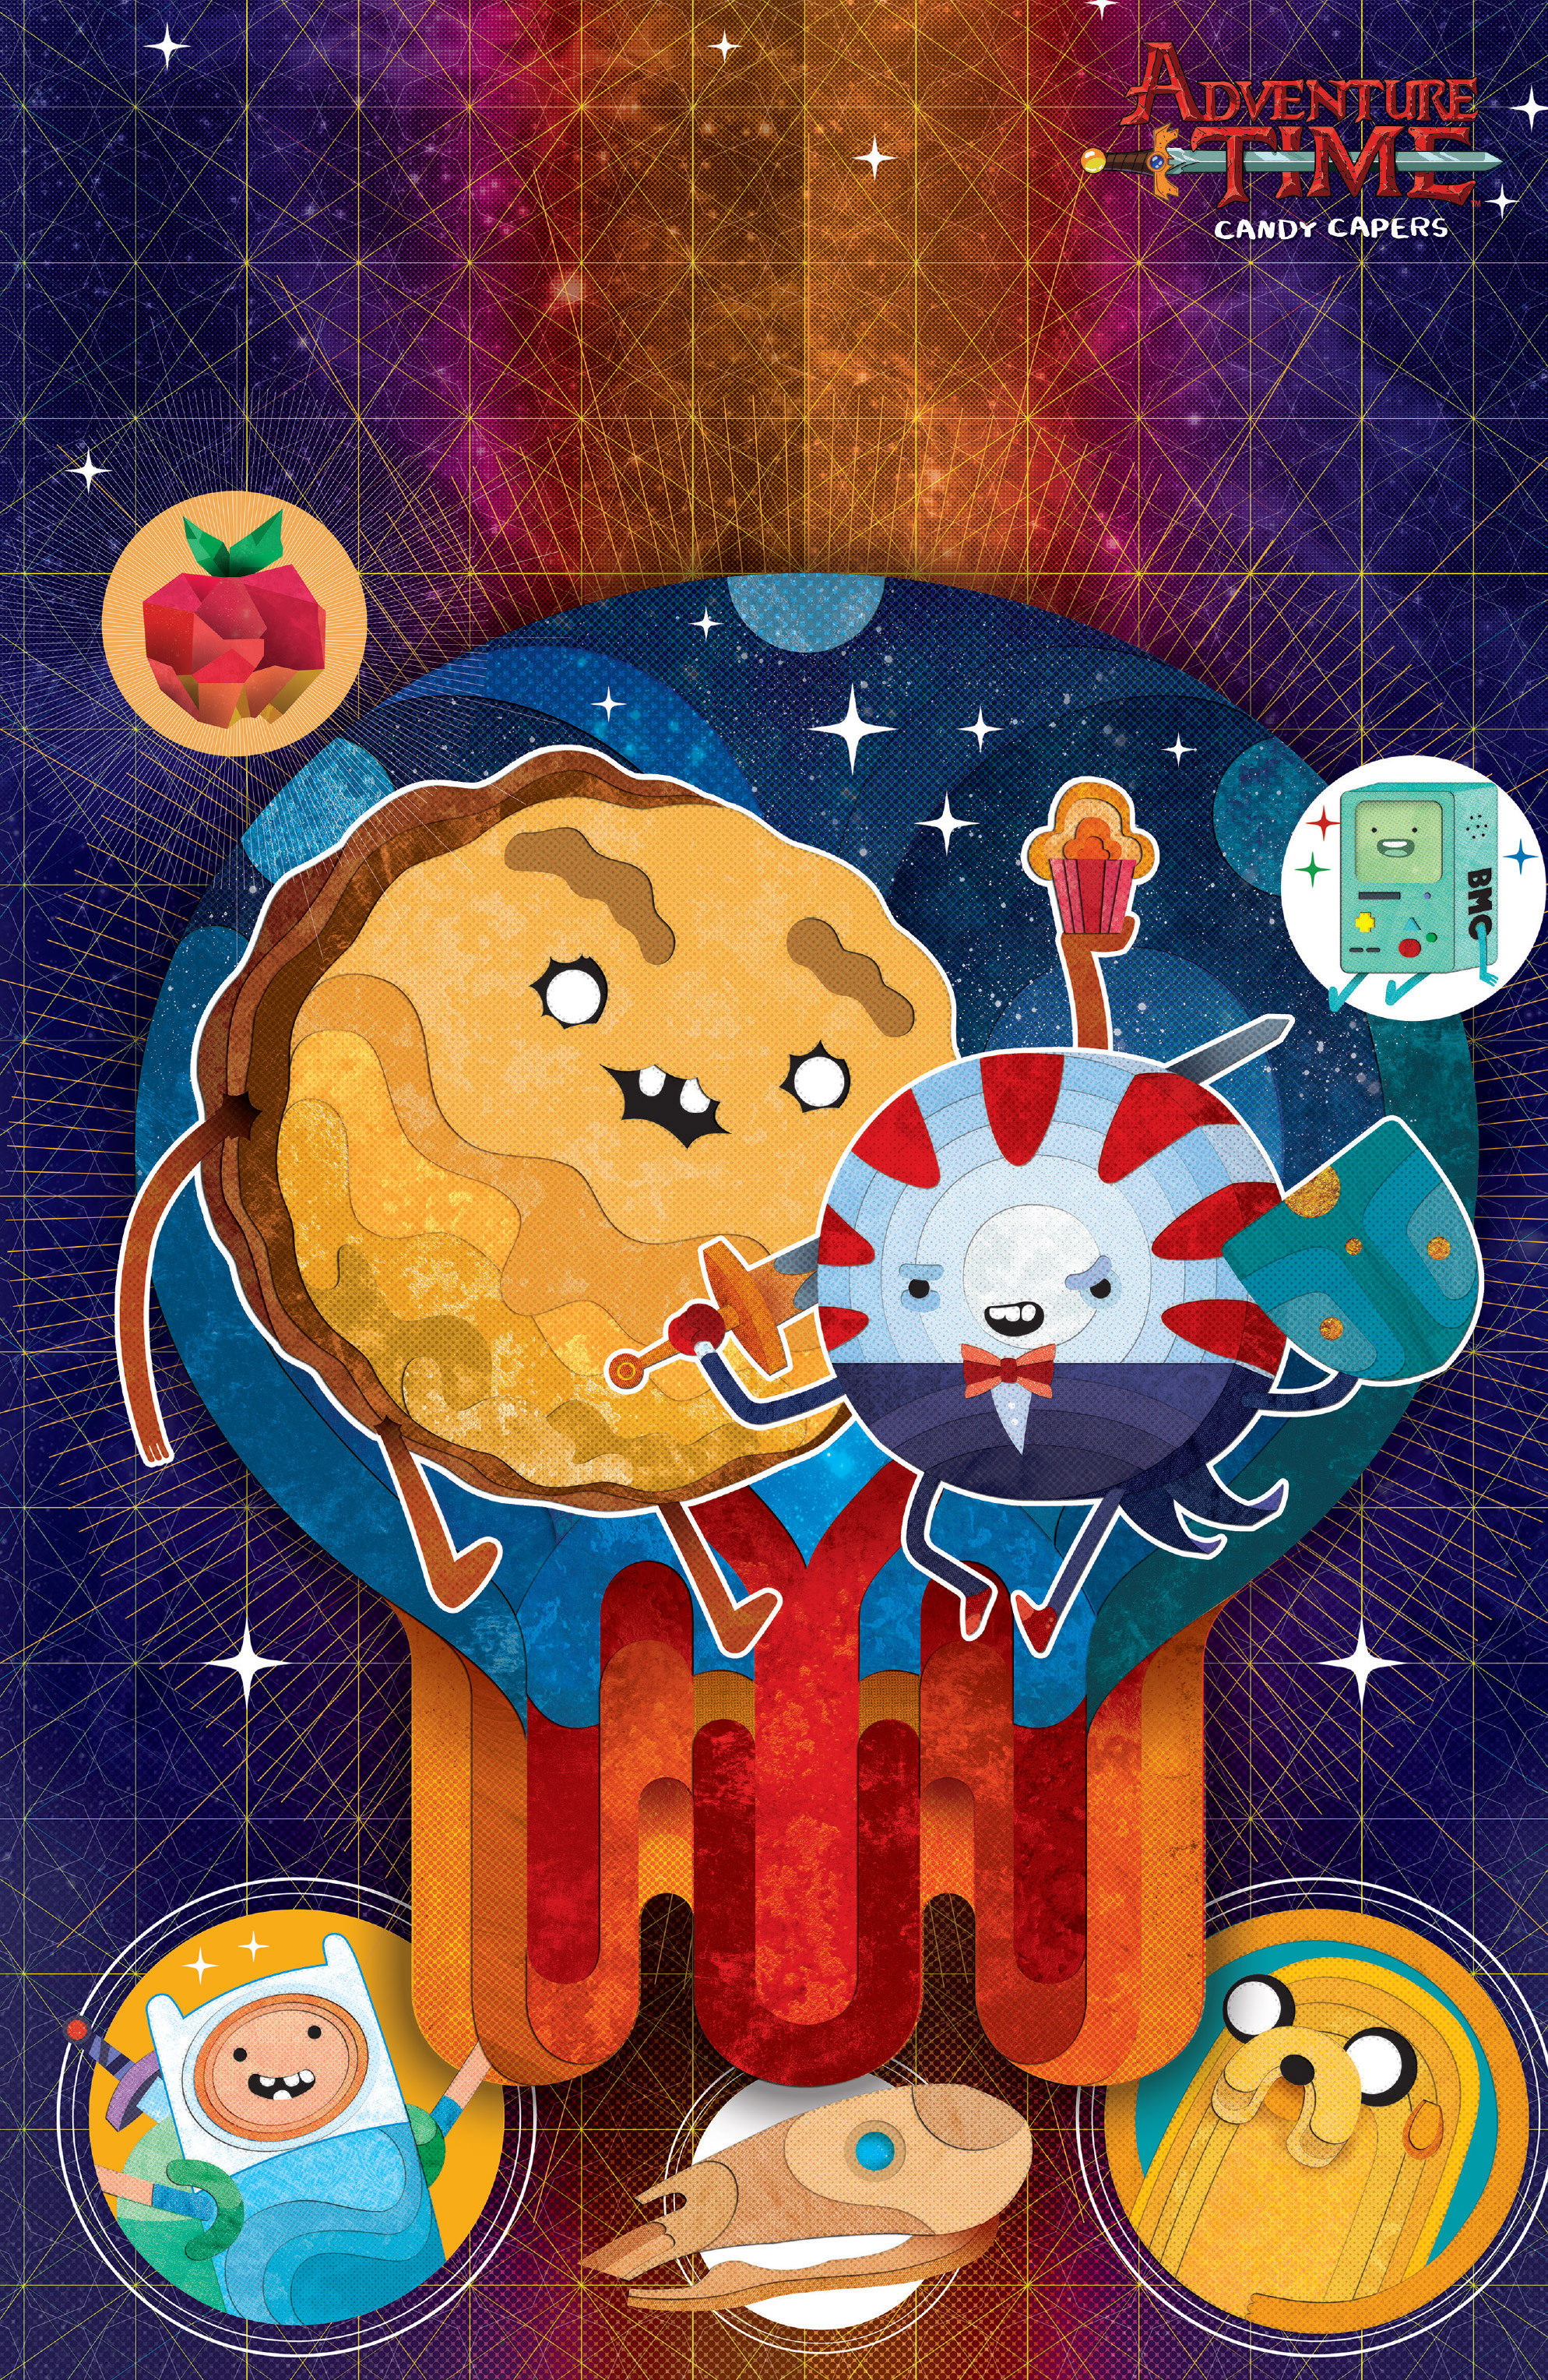 Read online Adventure Time: Candy Capers comic -  Issue #5 - 5